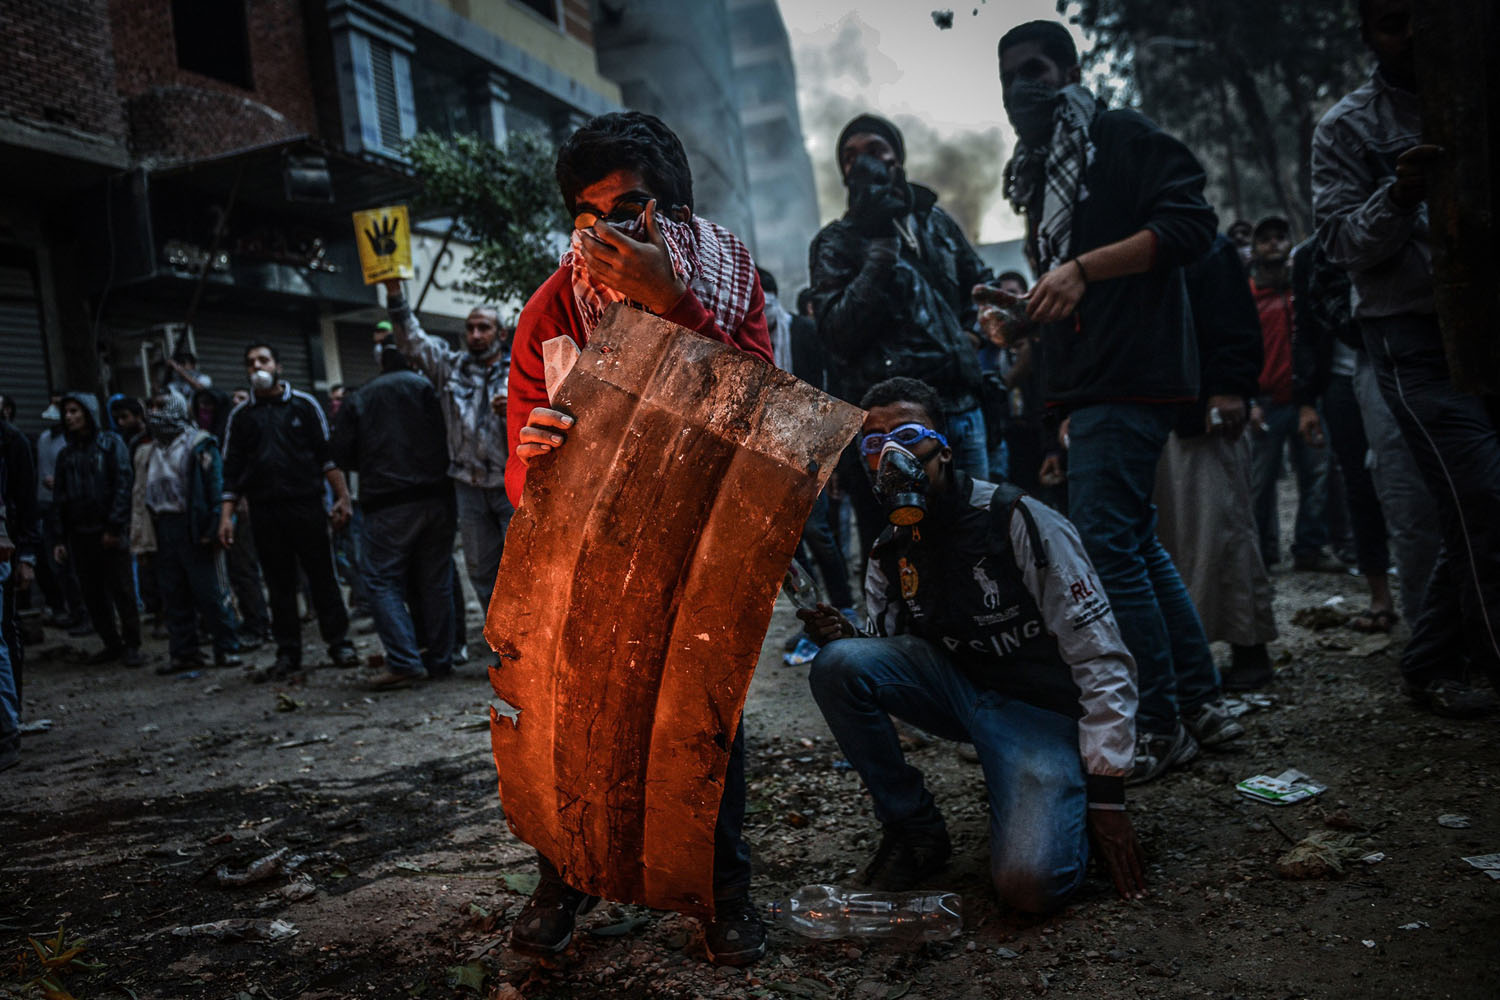 Dec. 27, 2013. Egyptian pro-democracy protestors and police clash during a demonstration against Muslim Brotherhood's 'terrorist label' in the Alf Maskan district of Cairo, Egypt.